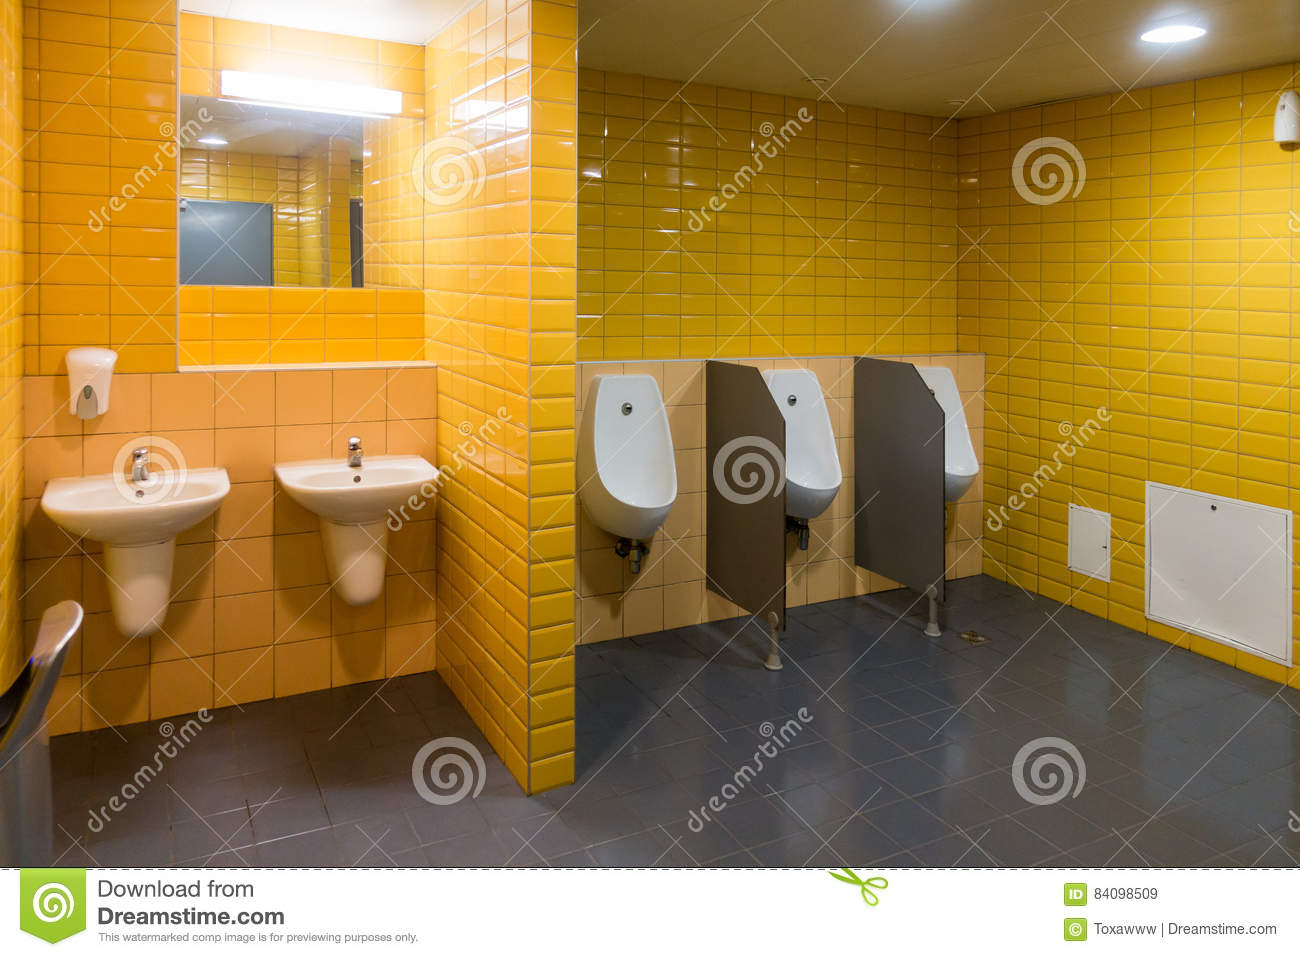 Public Modern Wc Men`s Room Stock Image - Image of water, lavatory ...